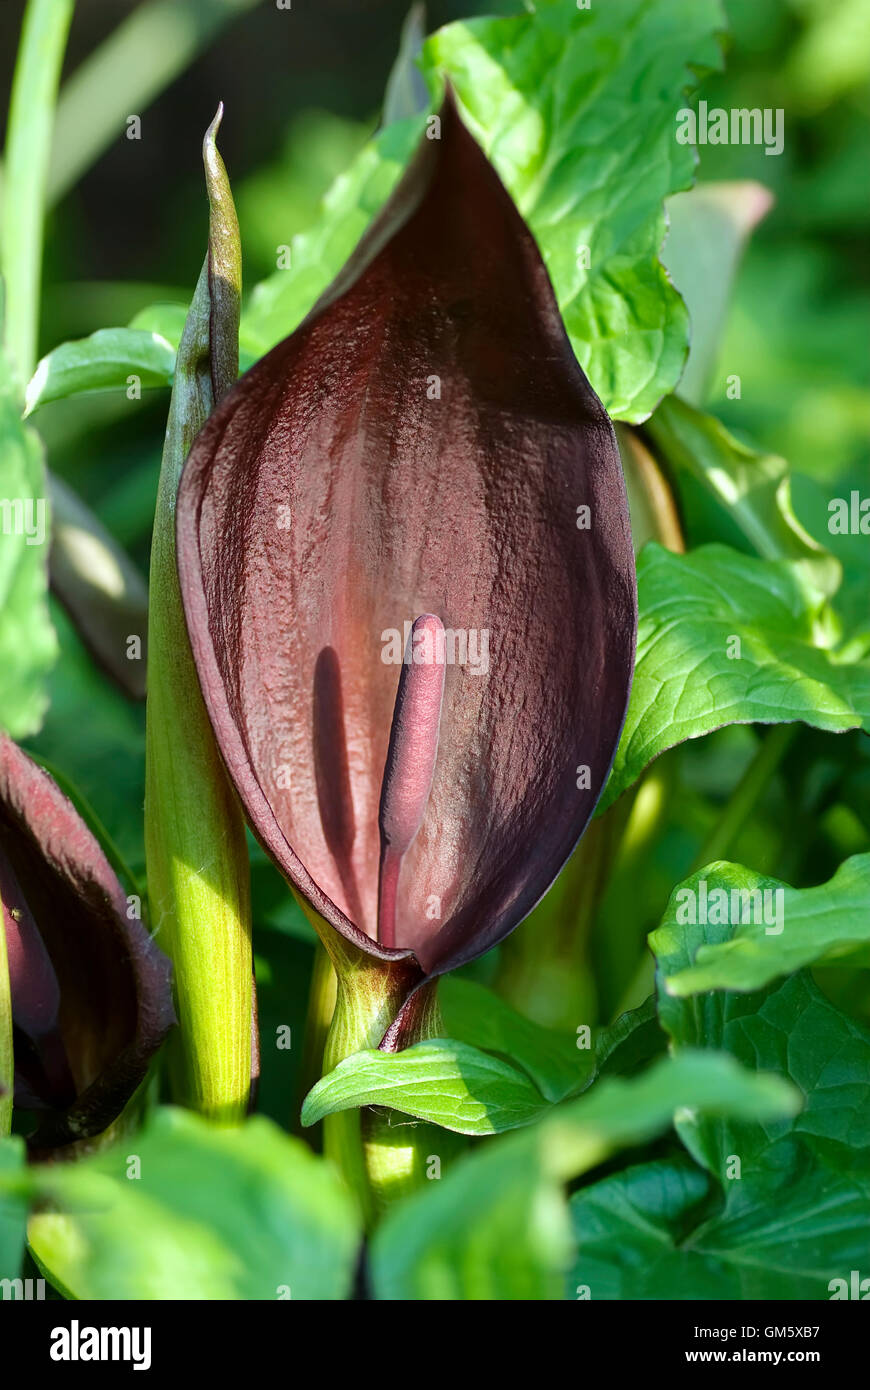 Arum purpureospathum inflorescence in Evening Sunshine - Stock Image